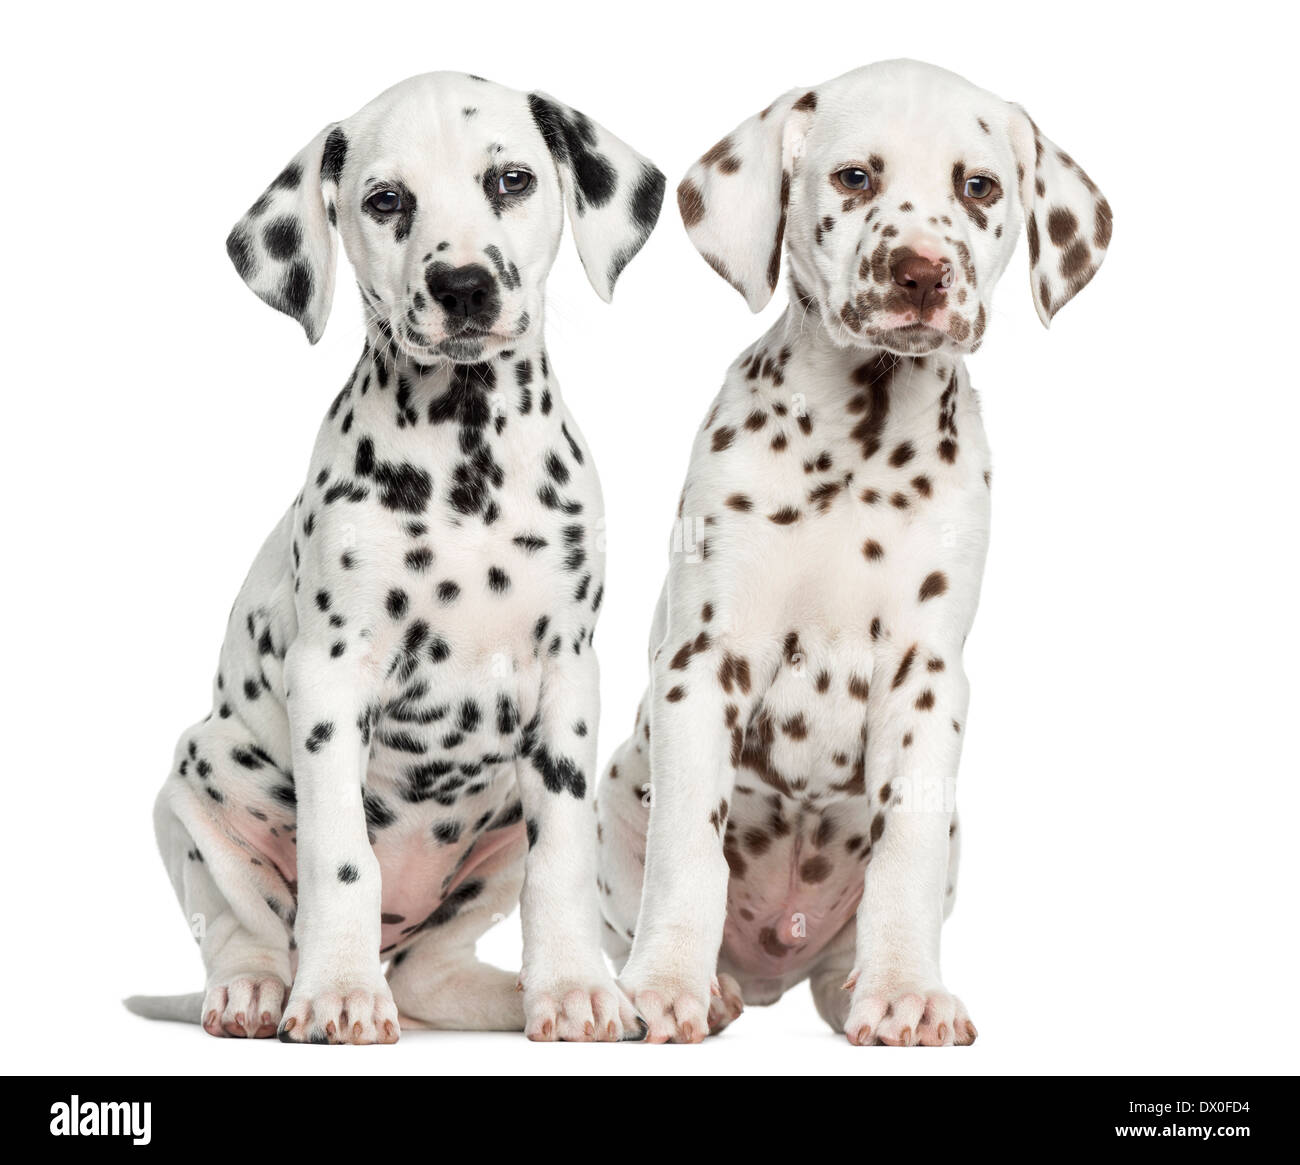 Front view of Dalmatian puppies sitting against white background - Stock Image